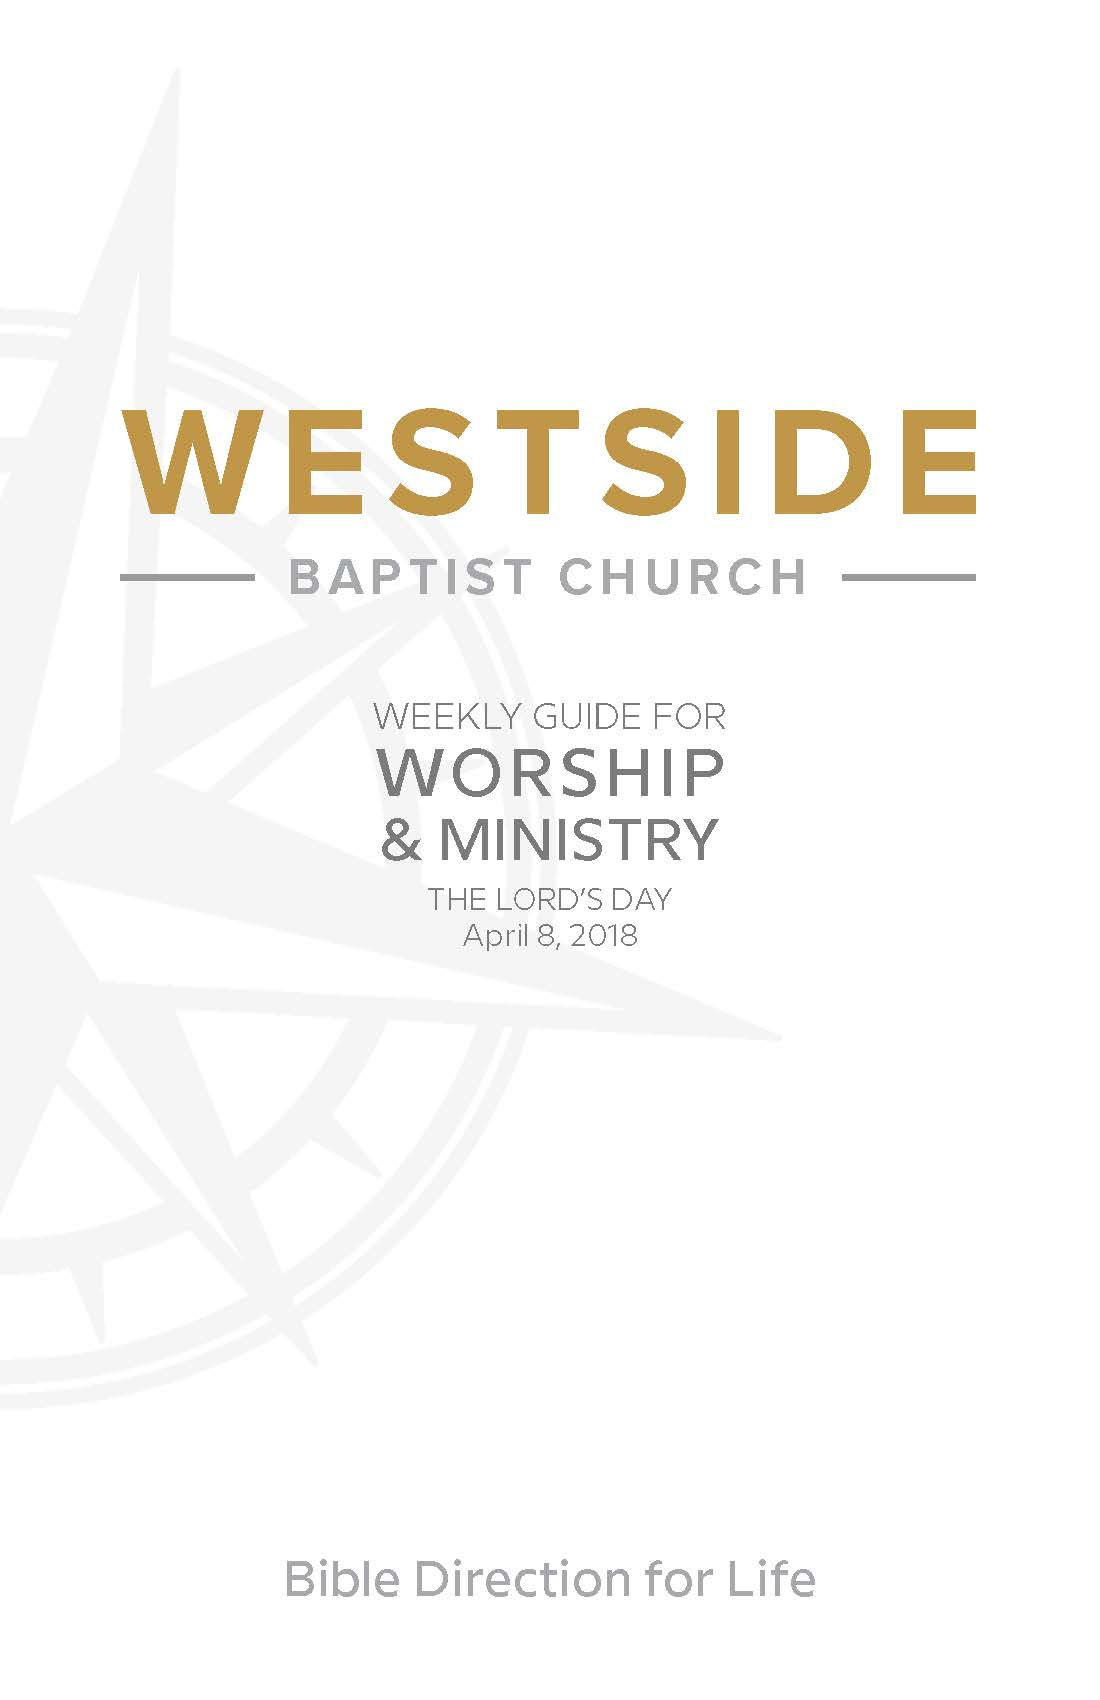 Weekly Guide for Worship and Ministry—April 8